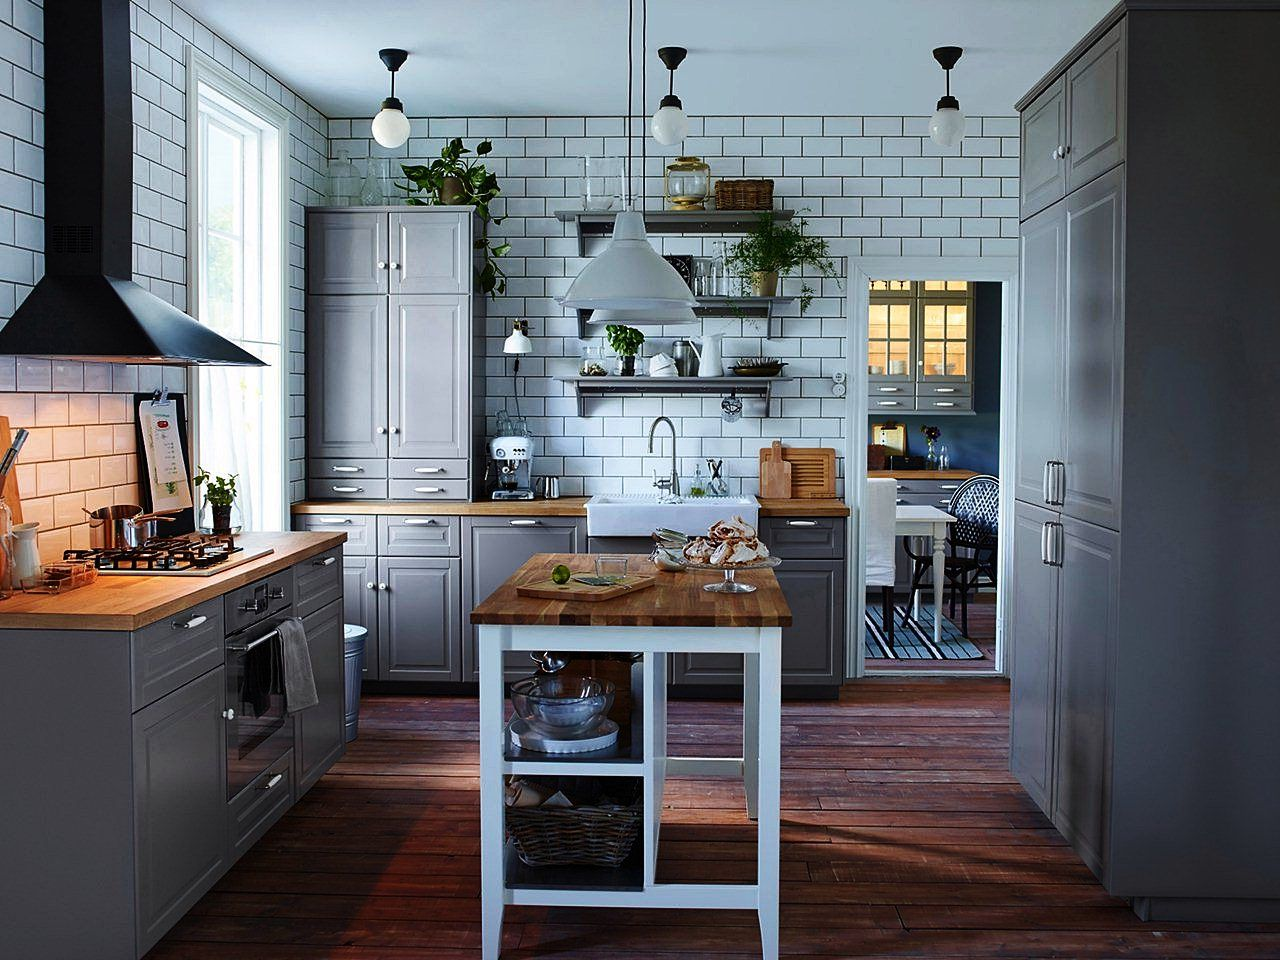 kitchen ikea recommended island ideas | Home Design Idea | Pinterest ...